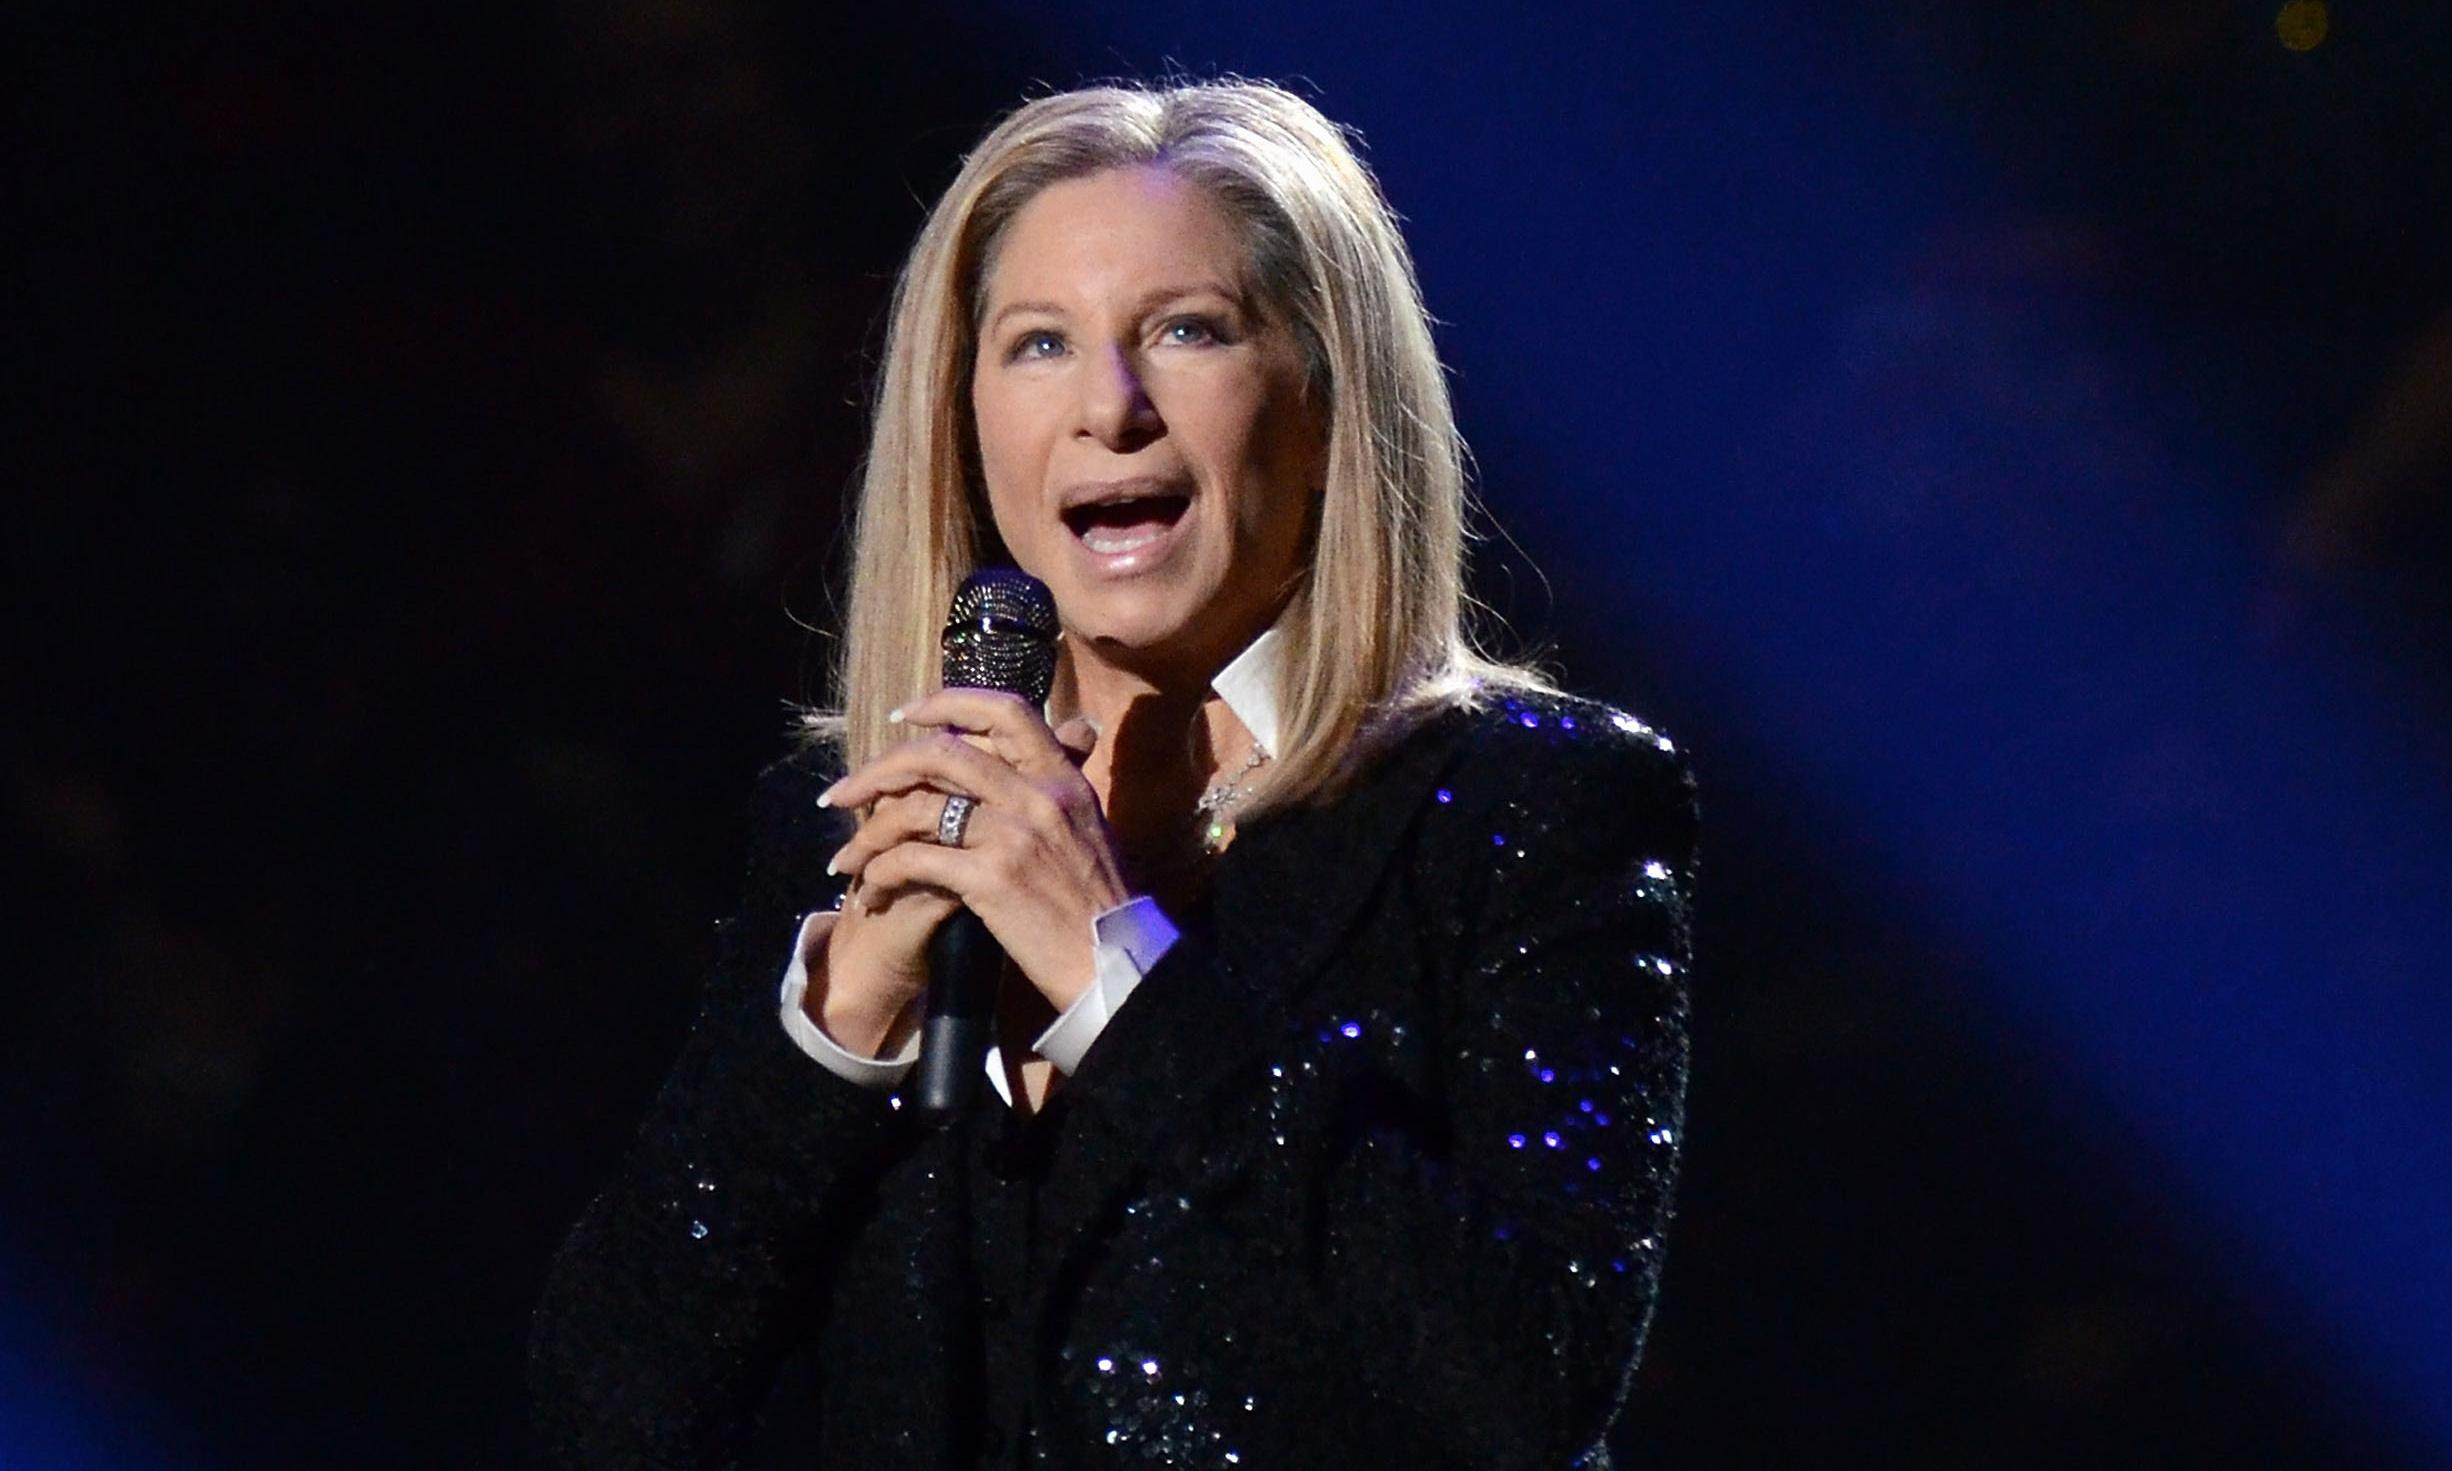 Barbra Streisand apologises for comments on Michael Jackson's accusers